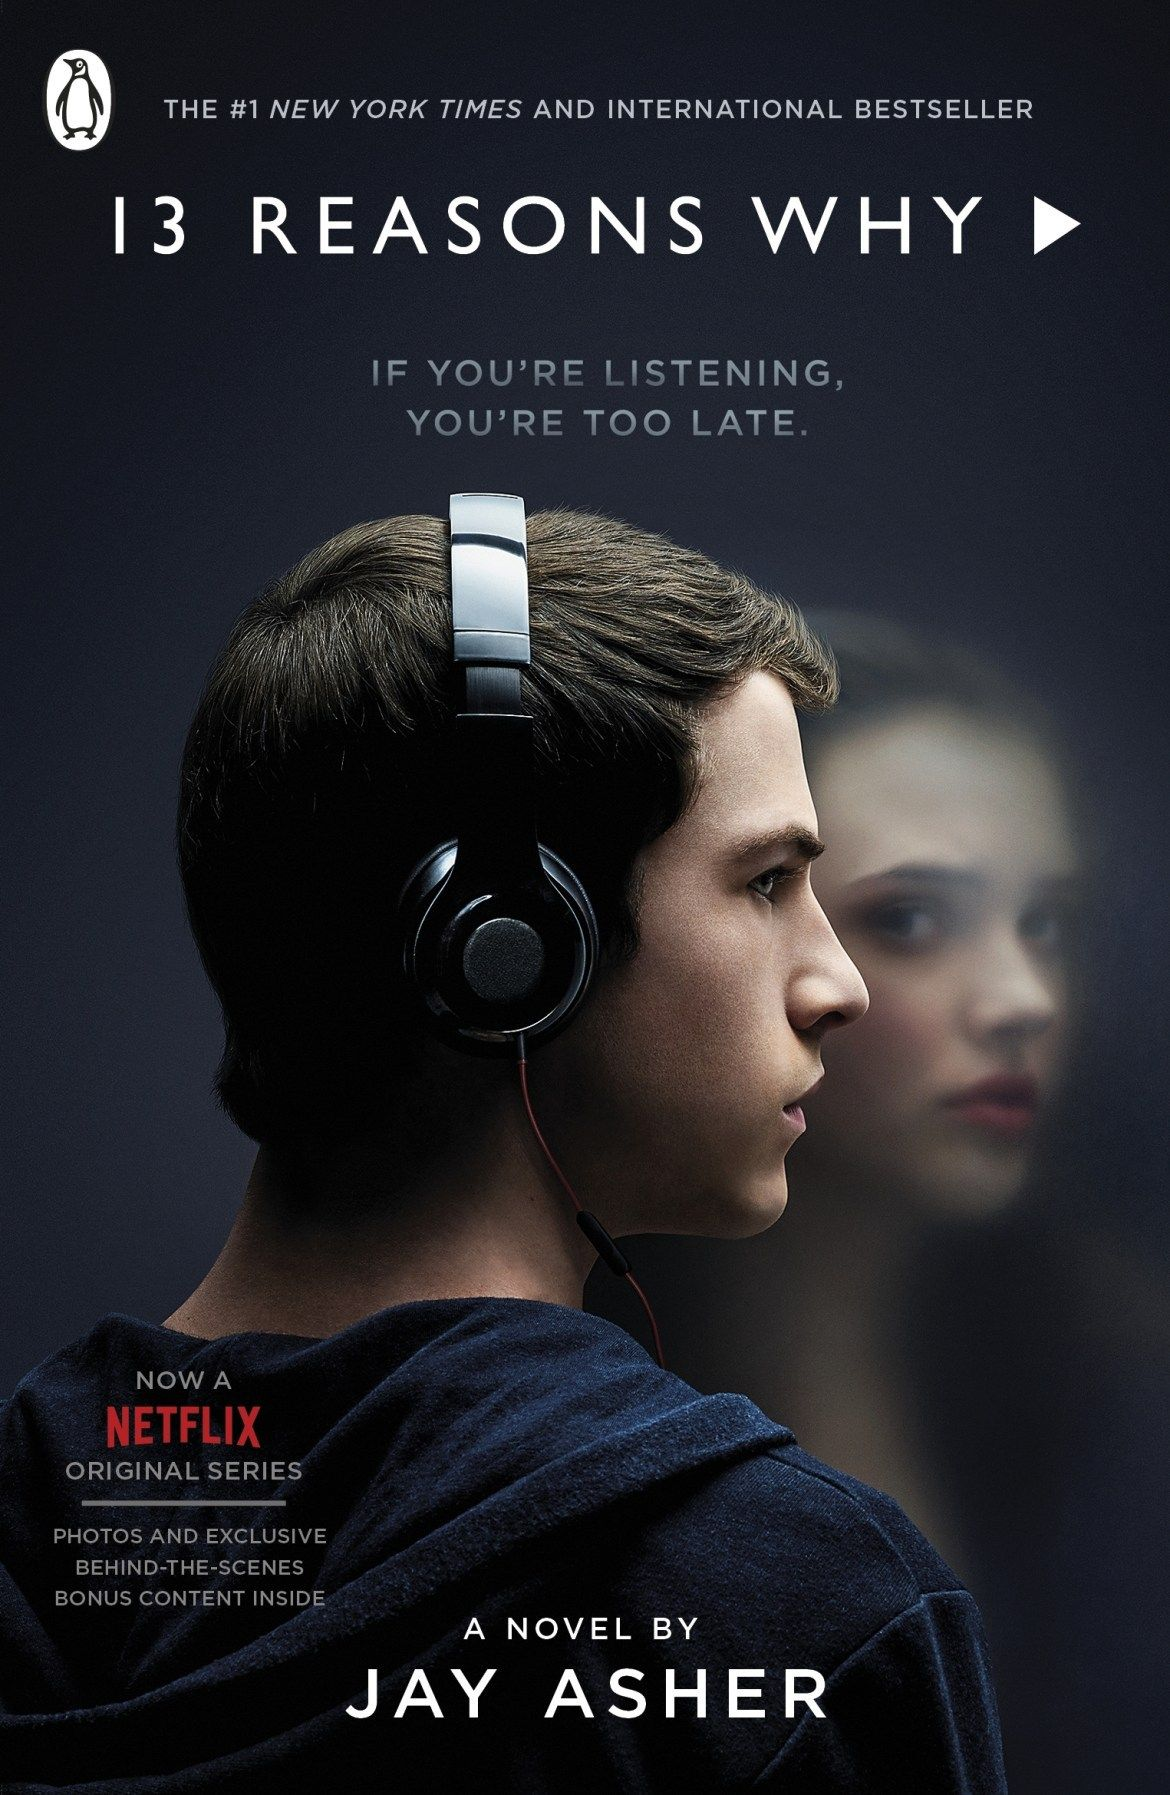 13 reasons why season 1 all episodes free download